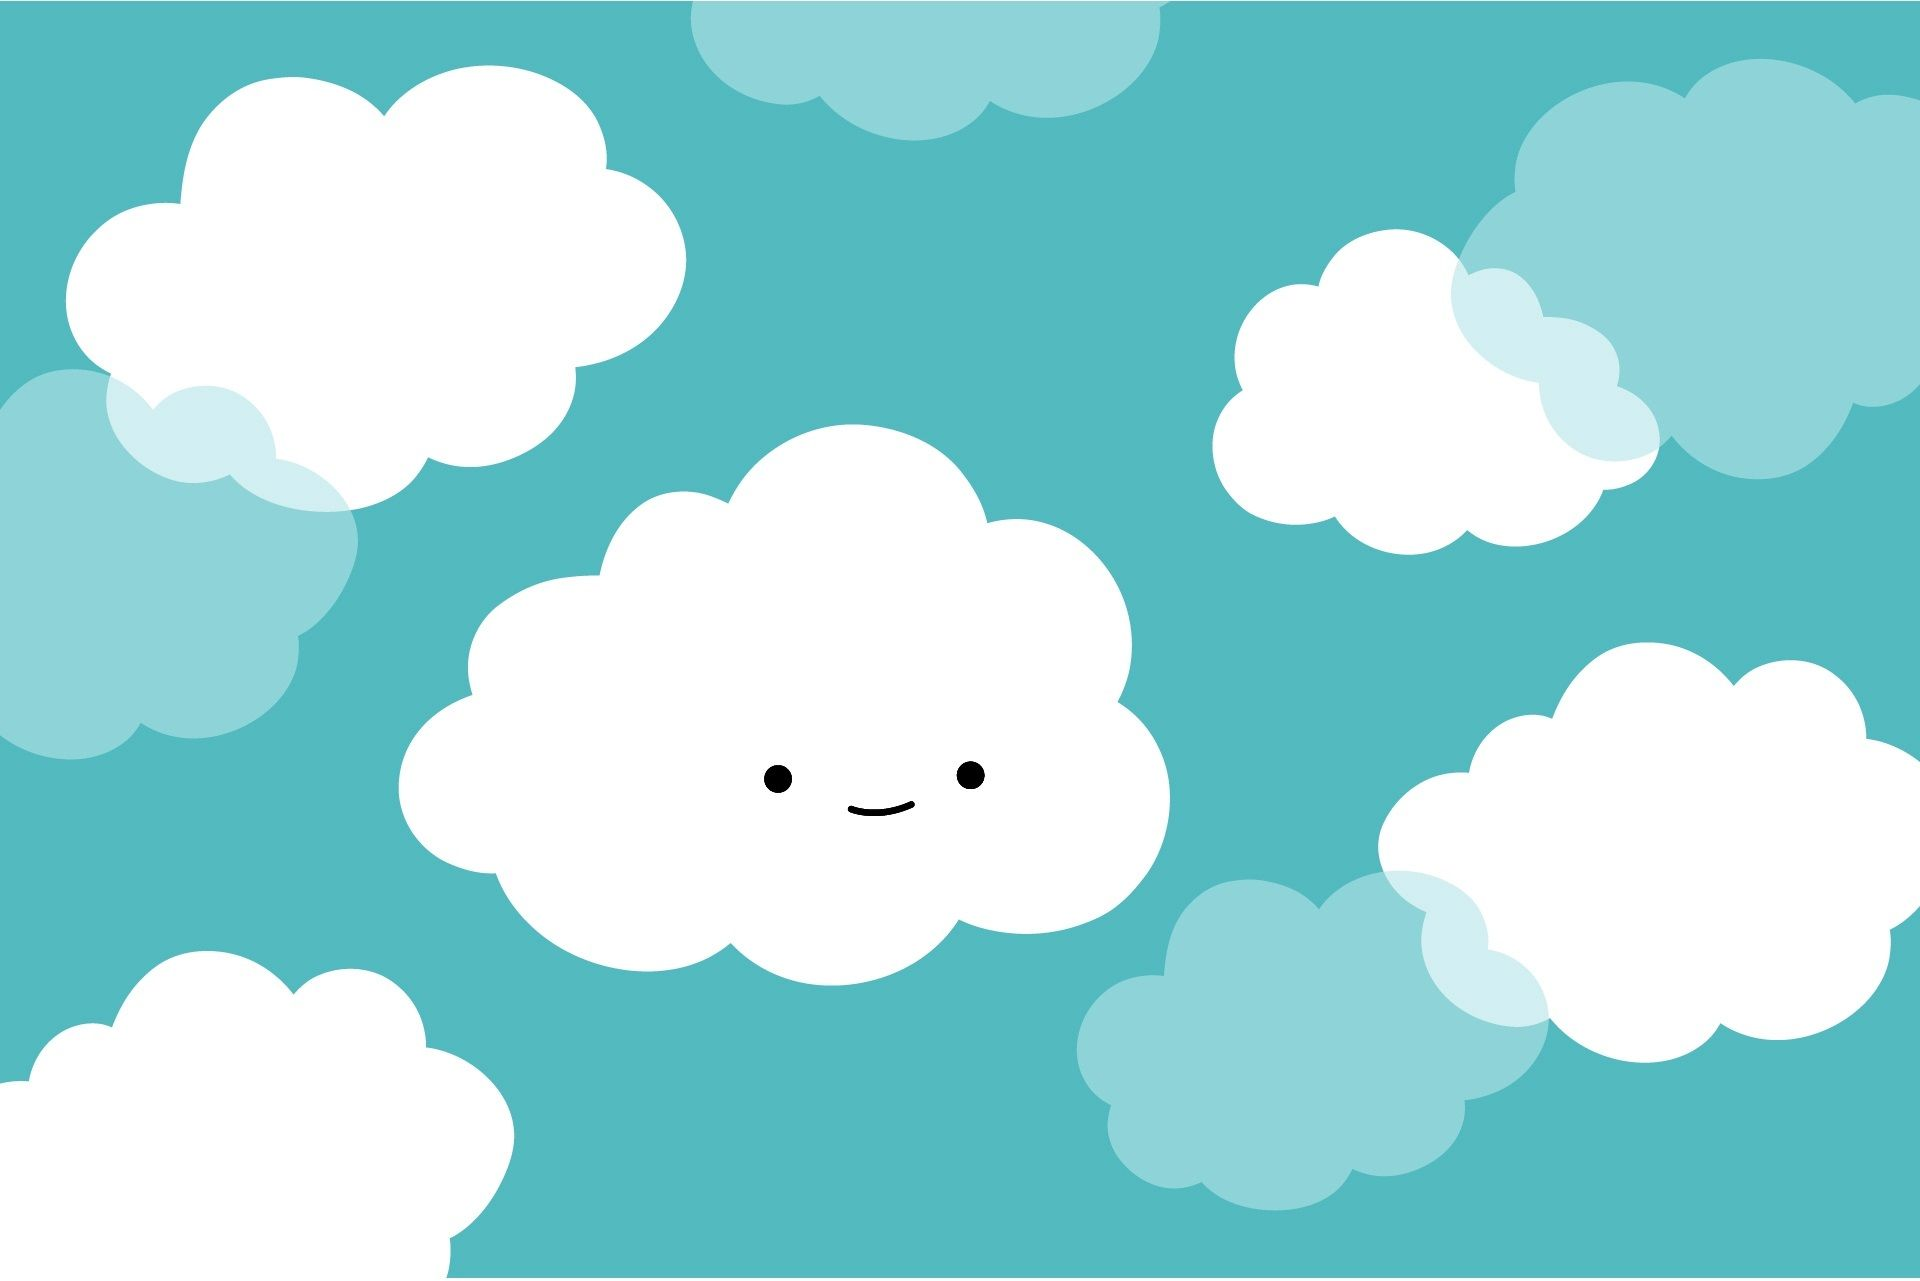 Cute cloud wallpapers.